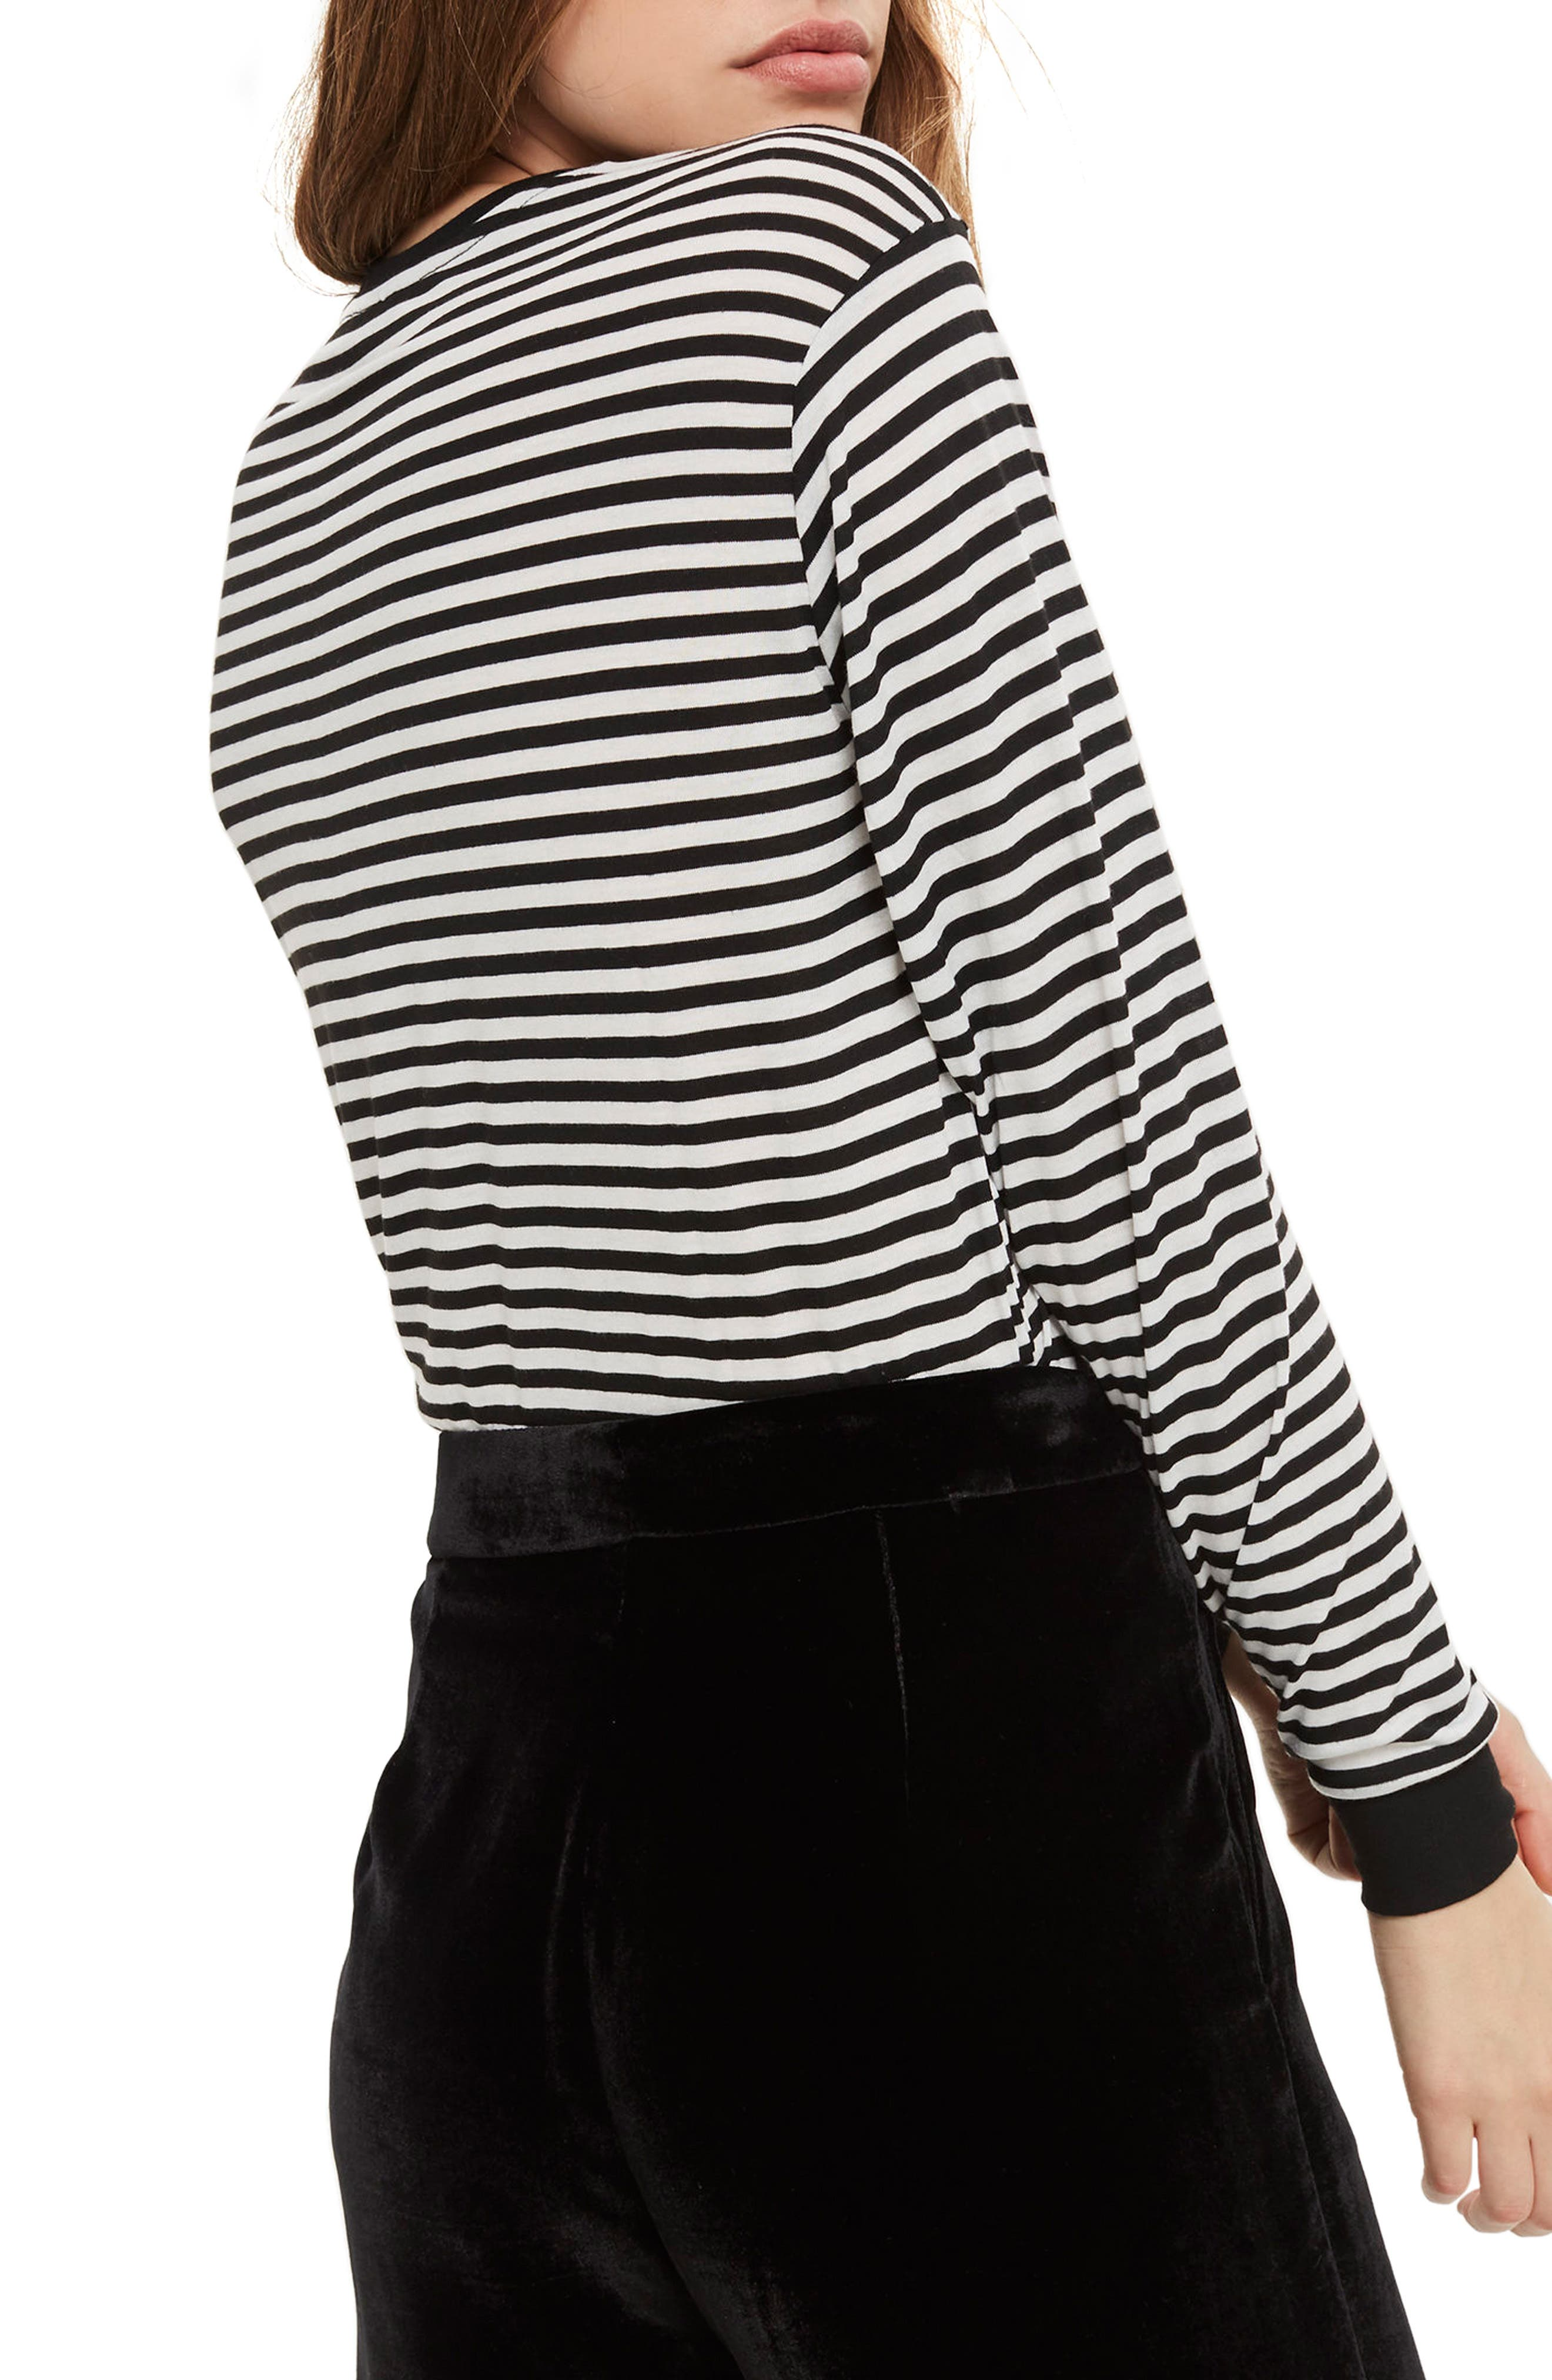 Ciao Embroidered Stripe Shirt,                             Alternate thumbnail 3, color,                             Black Multi